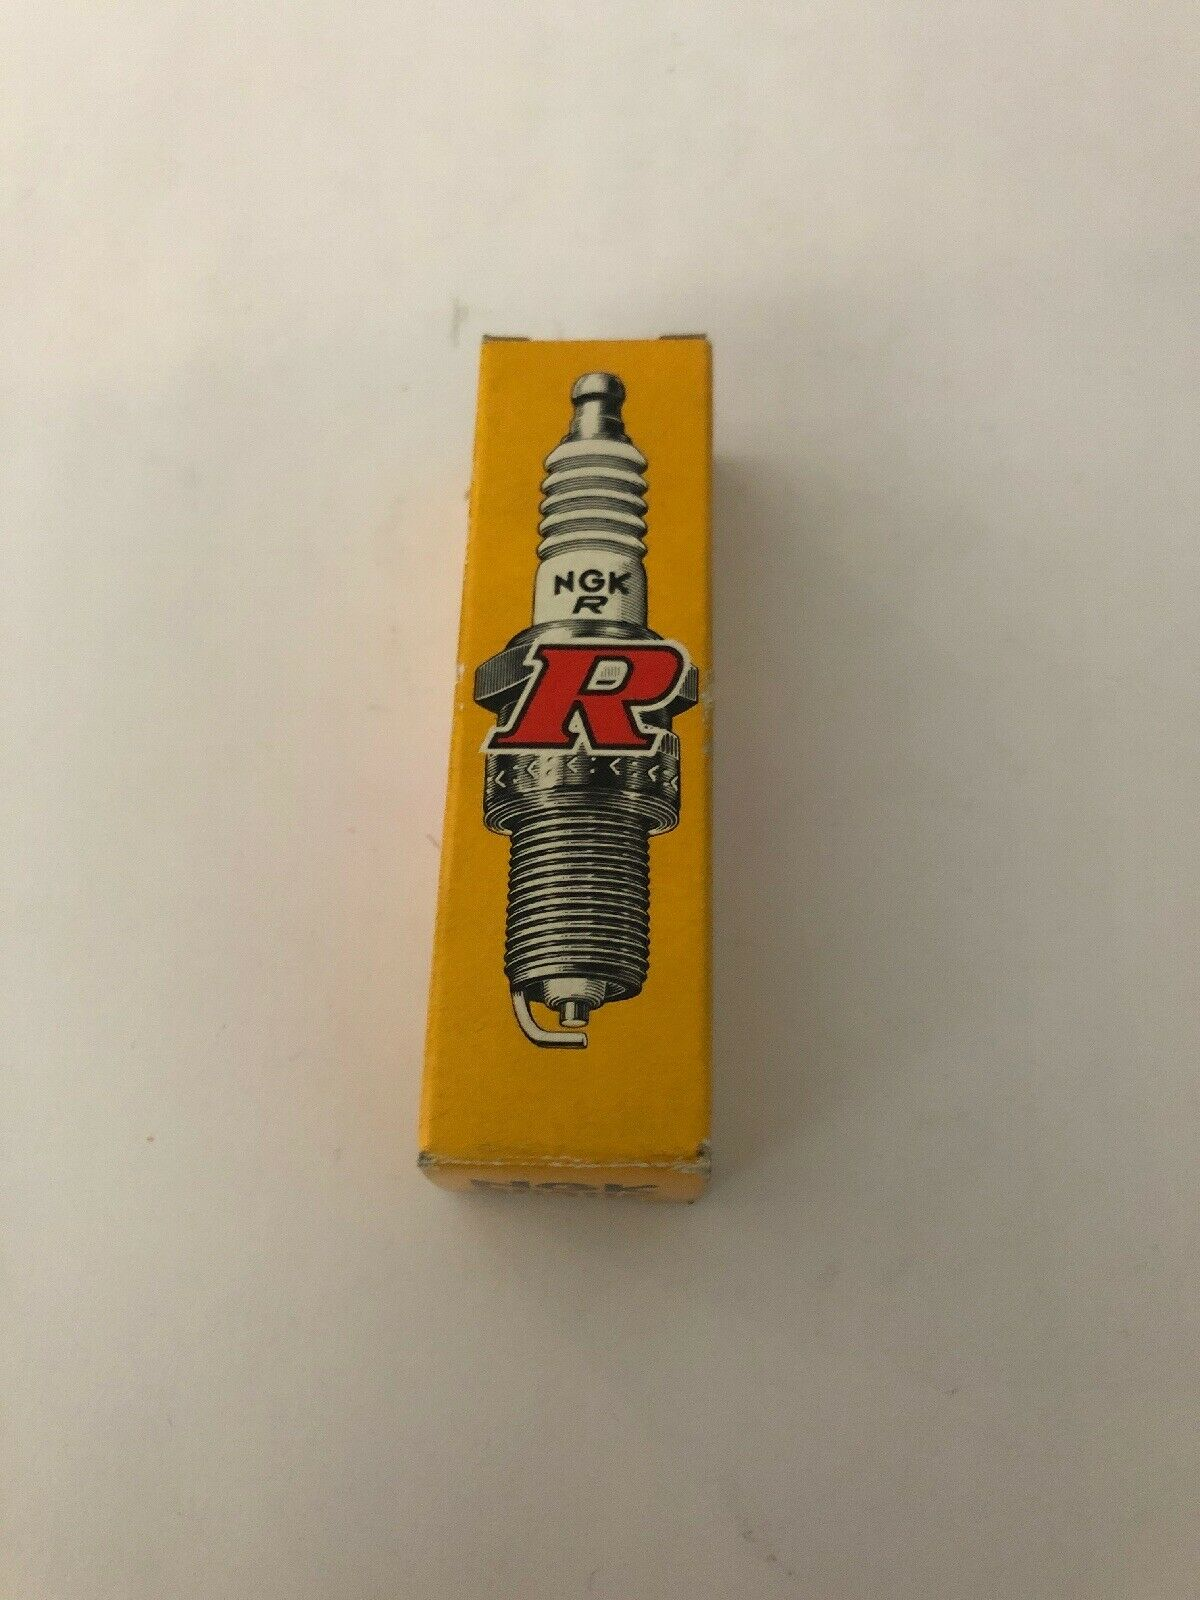 4x NGK SPARK PLUGS Part Number C8HSA Stock No 6821 New Genuine NGK SPARKPLUGS